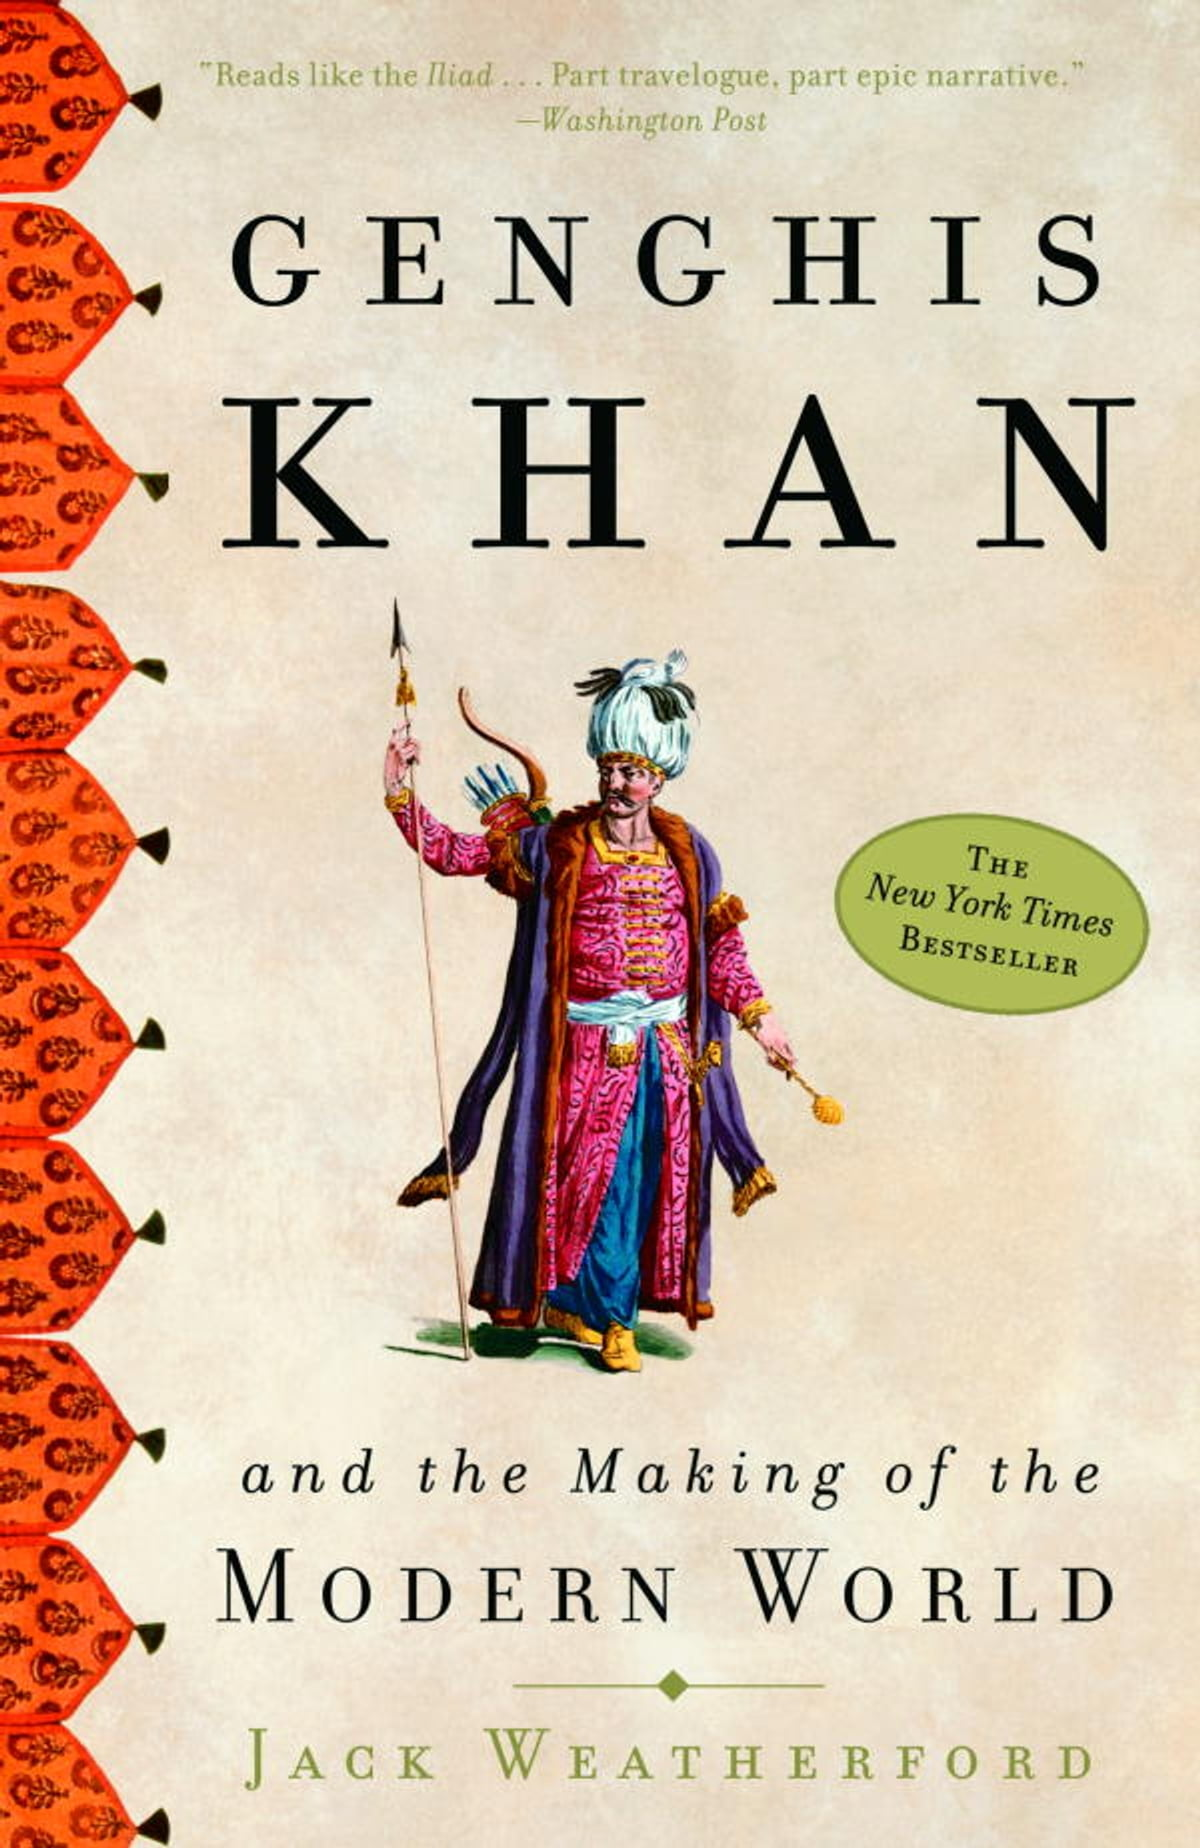 Genghis khan and the making of the modern world pdf free. download full